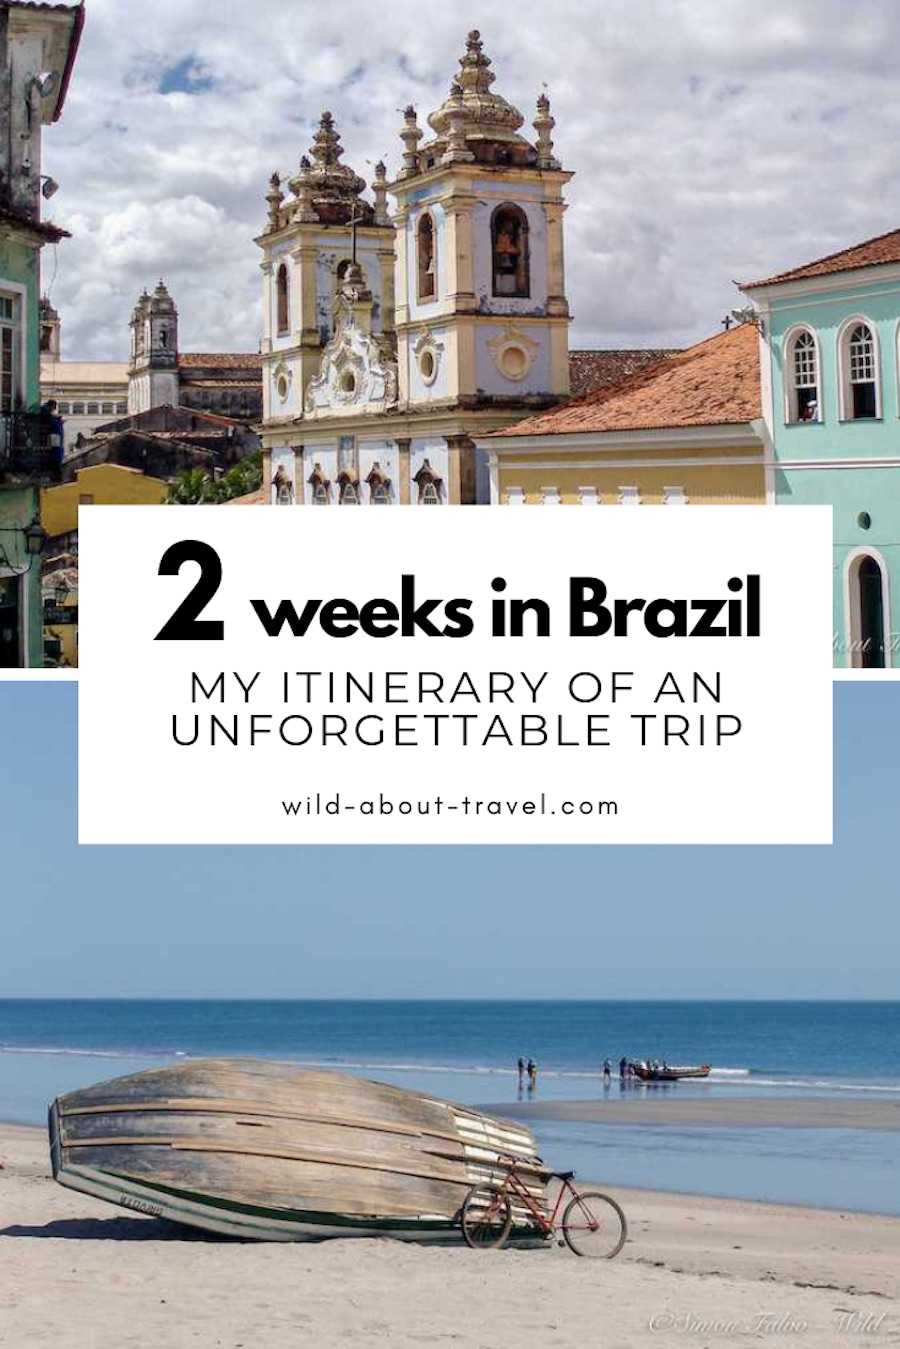 2 Weeks in Brazil: My Itinerary of an Unforgettable Trip